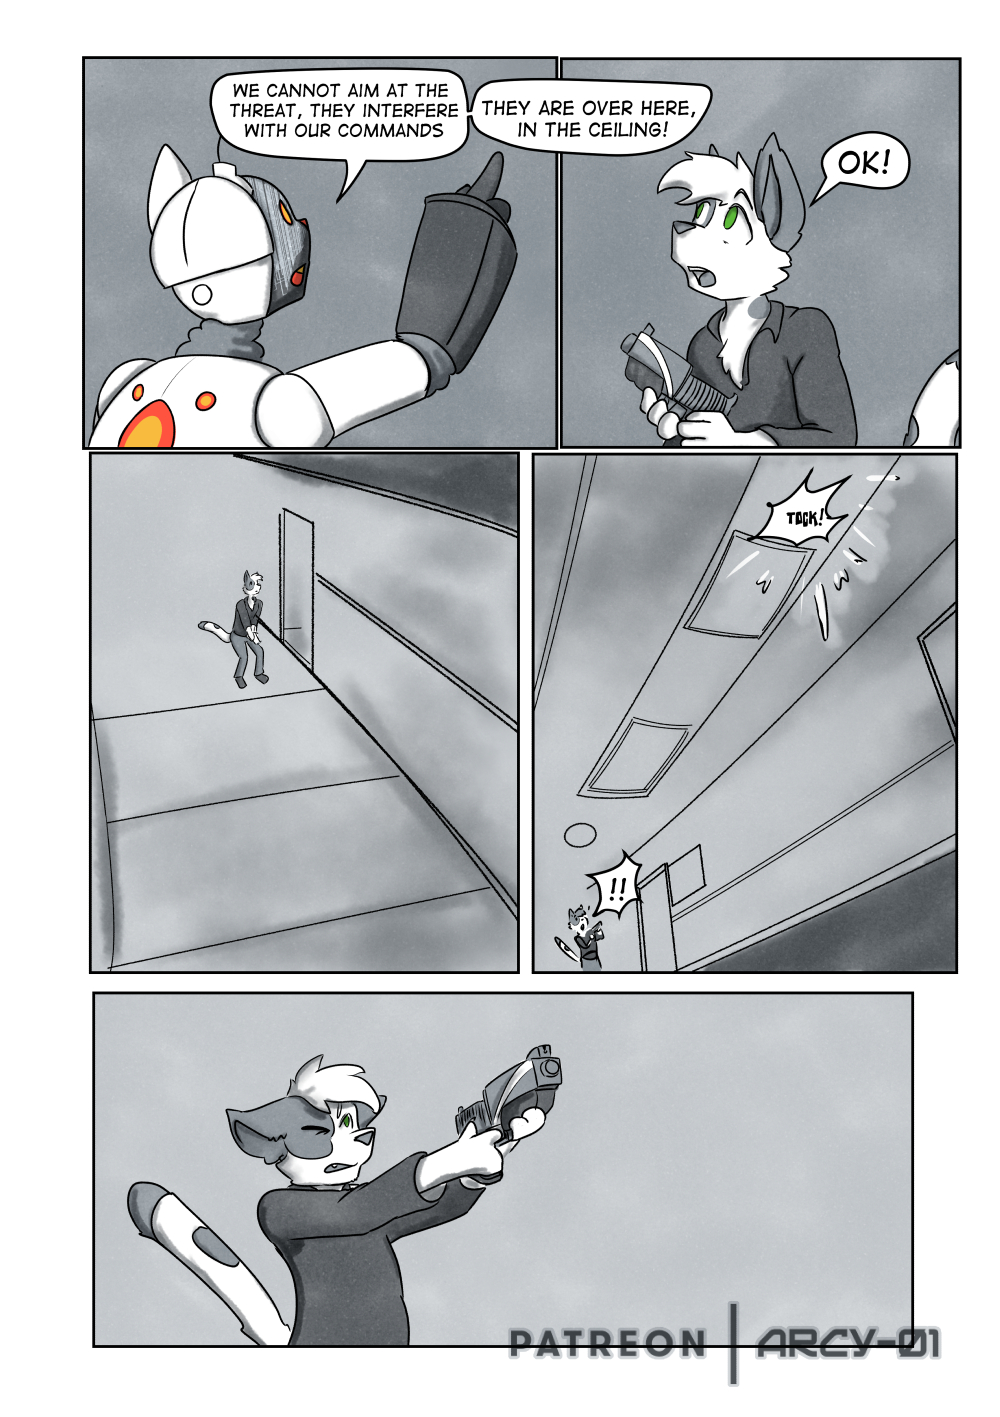 ARCY-01 page 171